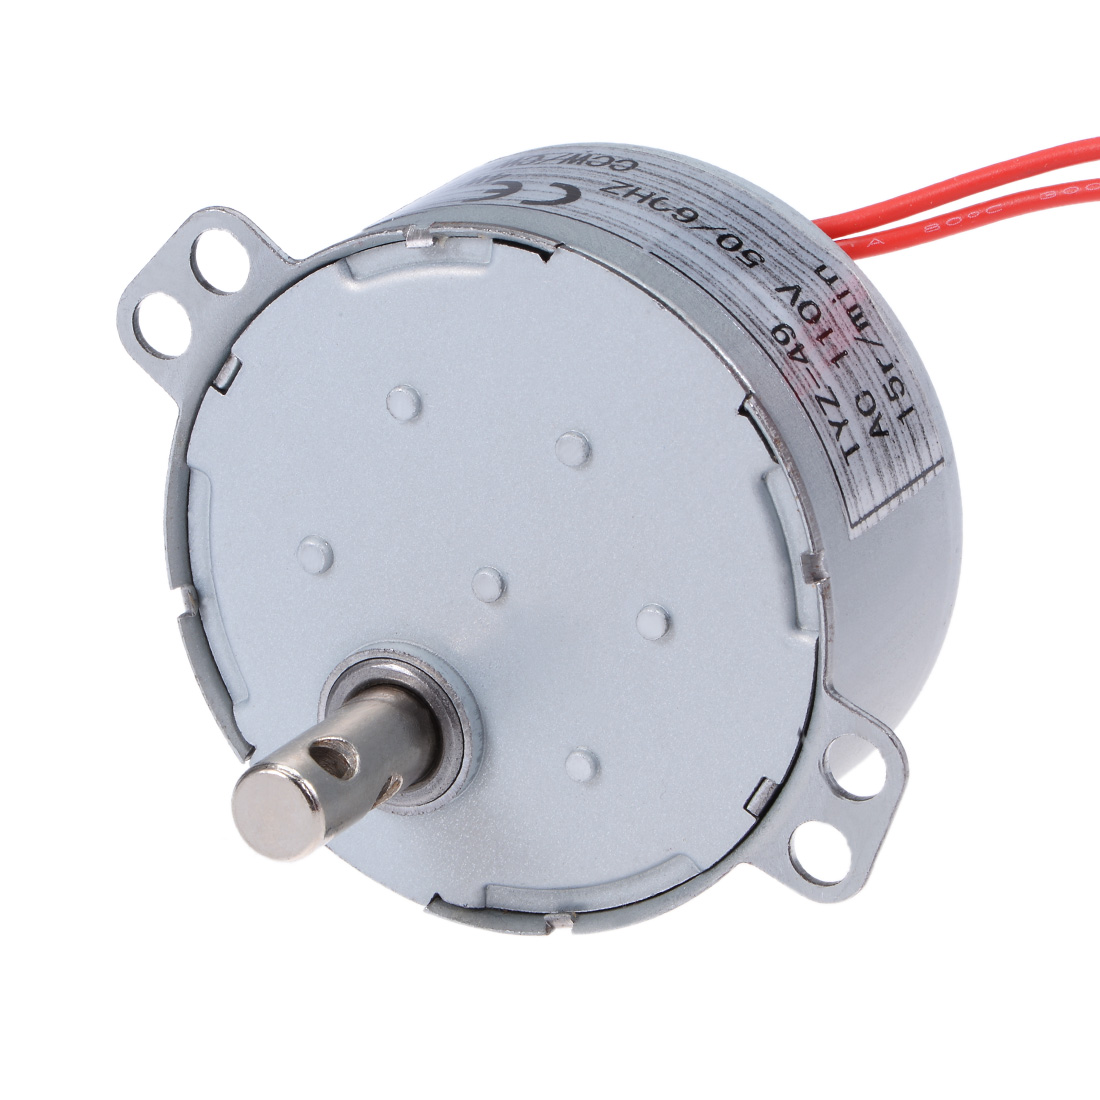 110V 50/60Hz 15RPM CW/CCW AC Synchronous Motor Turntable Gear Box for Microwave